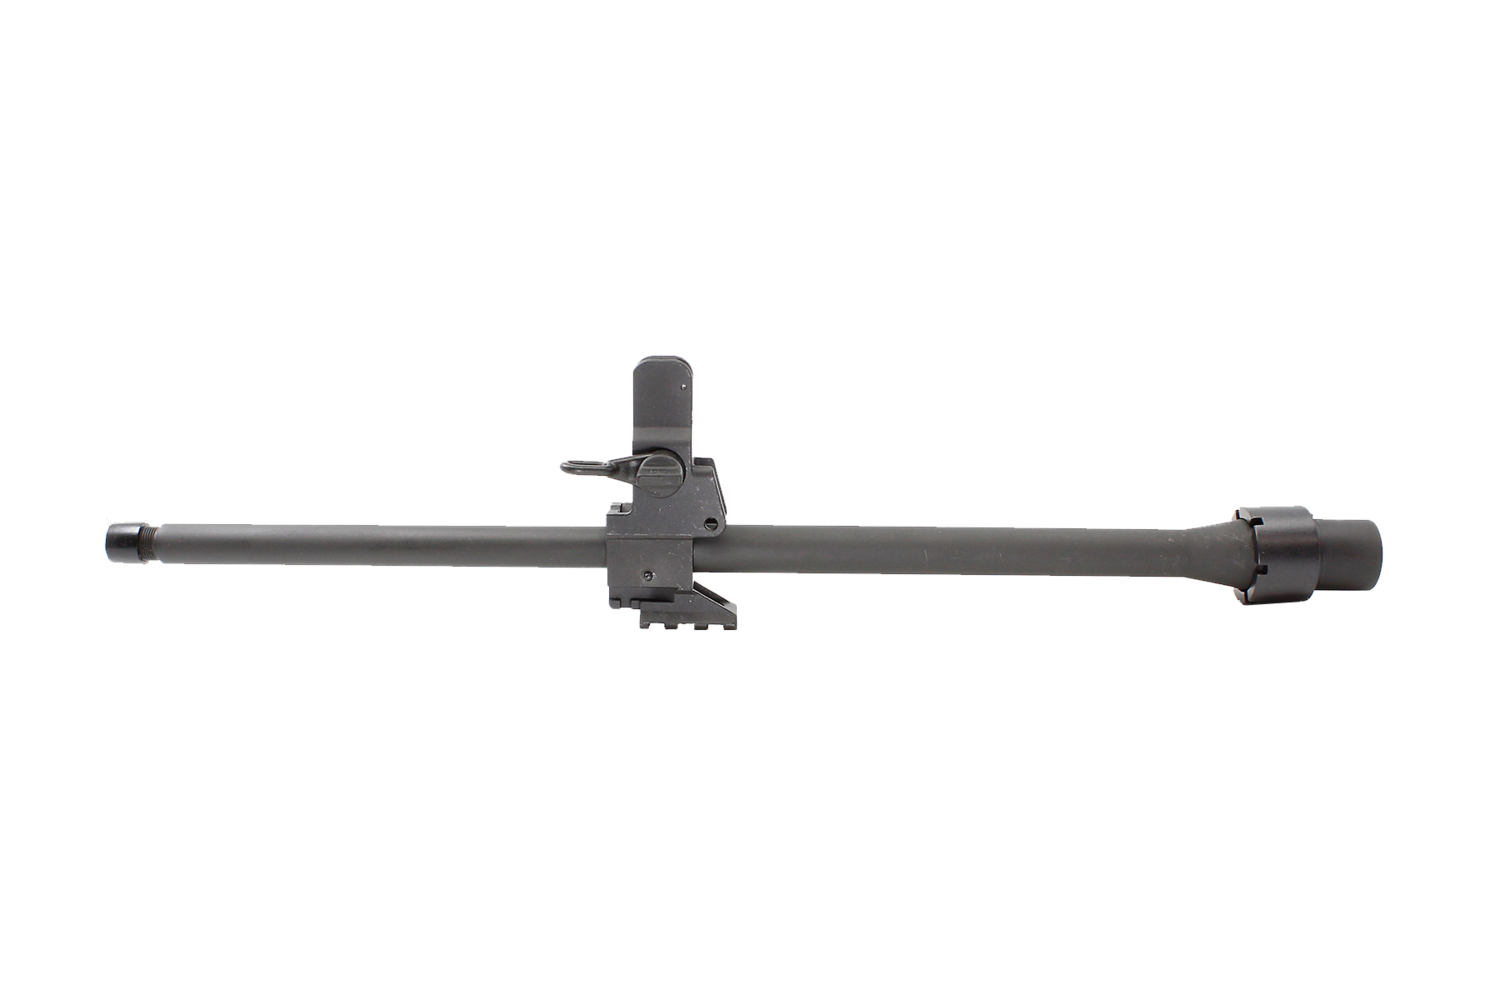 T91 16 inch Original 15mm MIL-SPEC Profile Chrome Lined Barrel Assembly